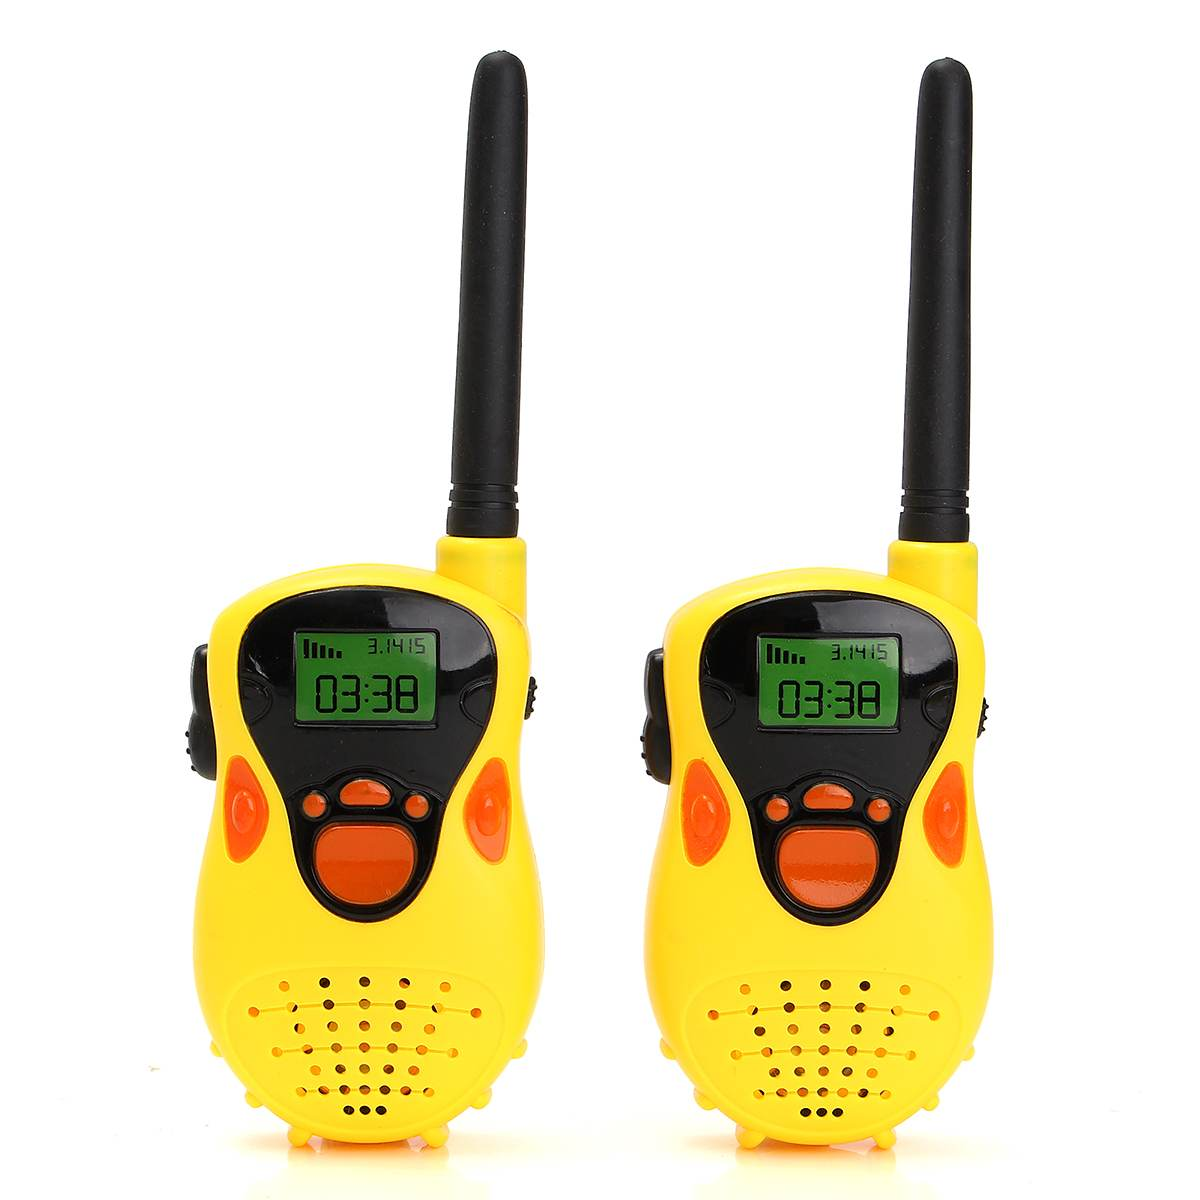 1 Pair Mini Walkie Talkie Kids Radio Two Handheld Channel Walkies Talkie For Children Toy Educational Games Transceiver Kid